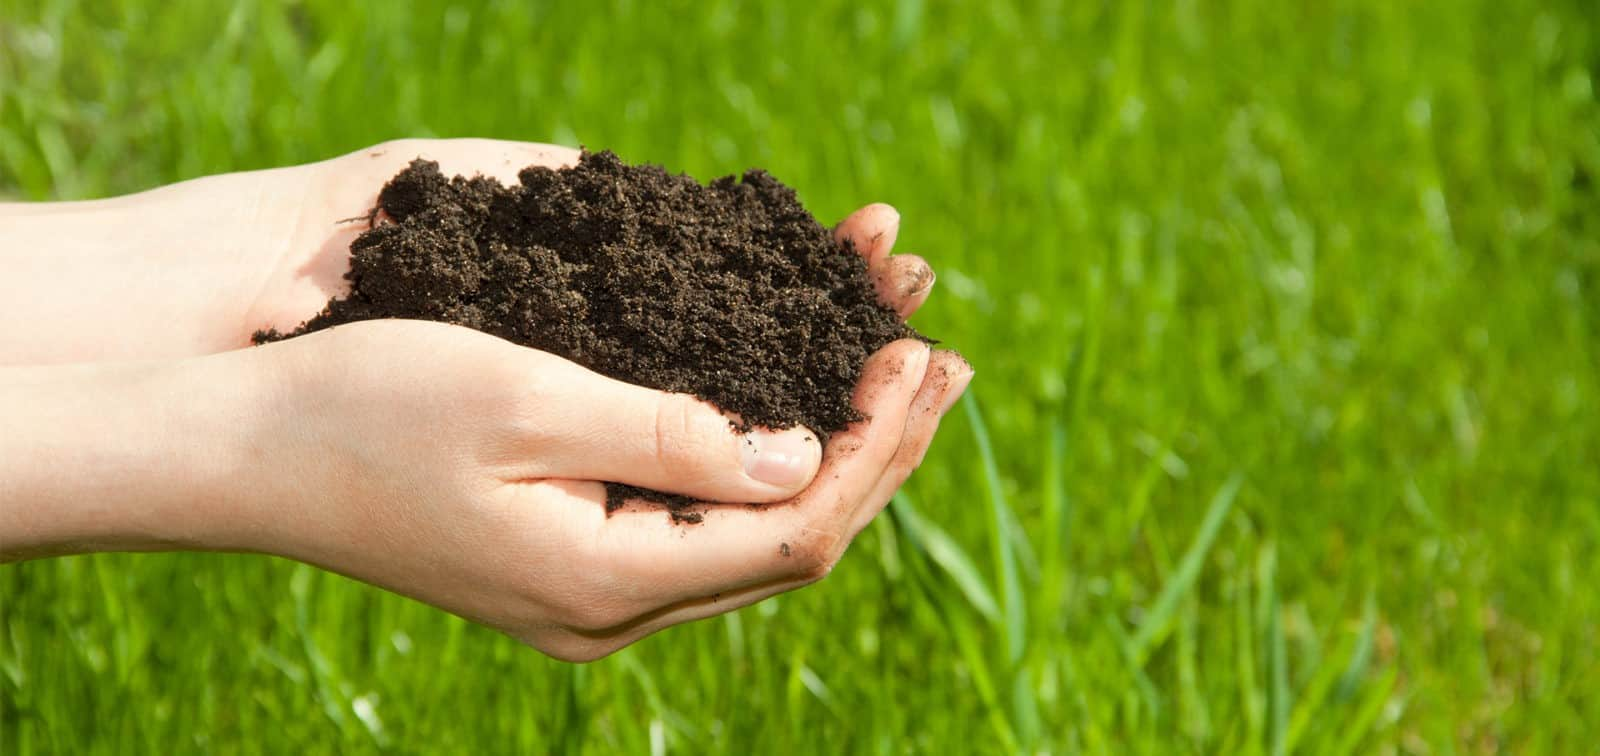 hand holding compost which provides nutrients to lawns